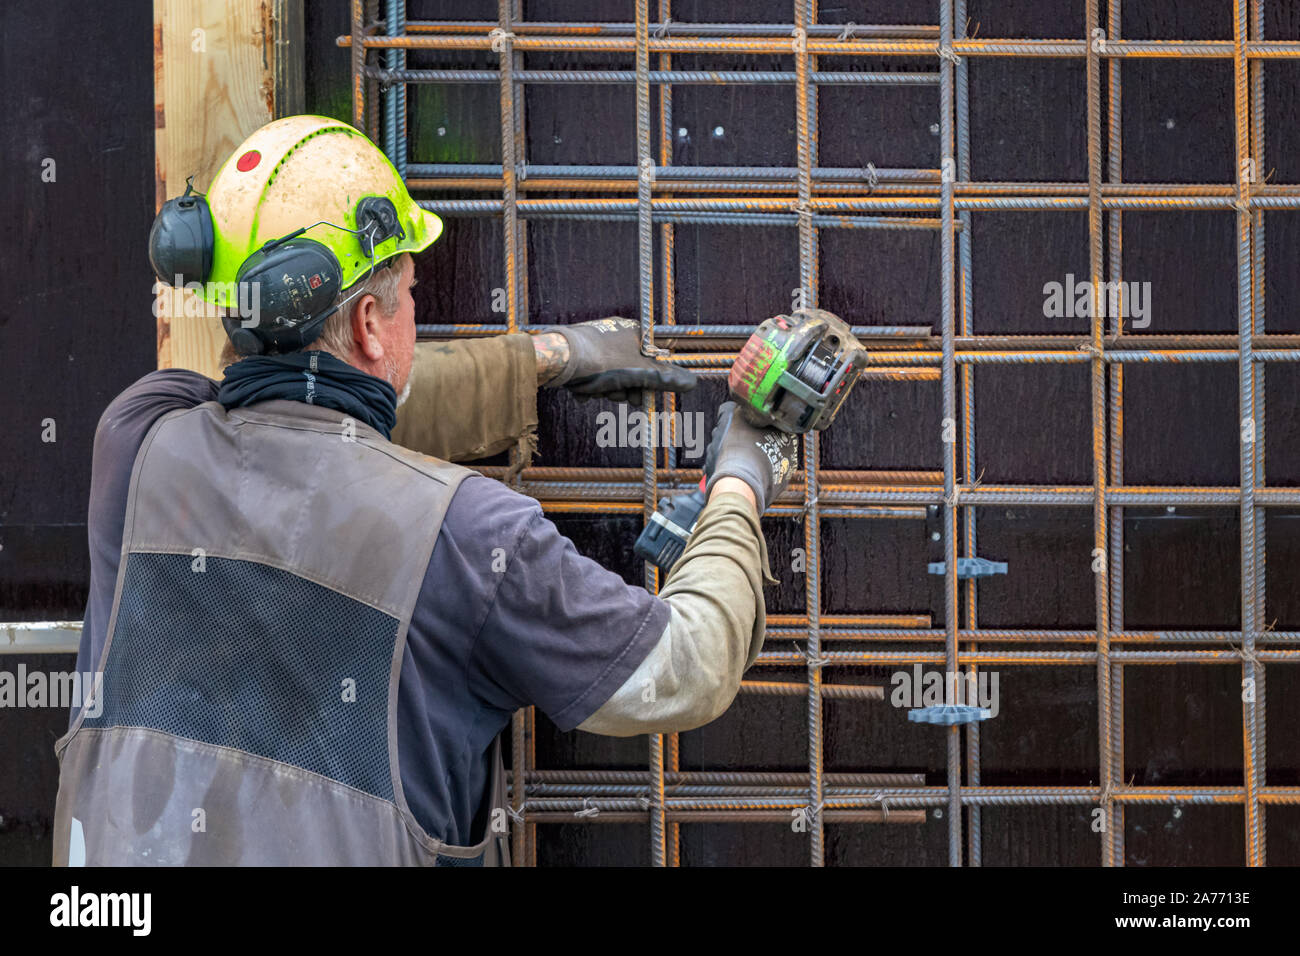 Construction worker bending - wiring concrete steel bars with a machine, outdoors in Nuuk. Stock Photo